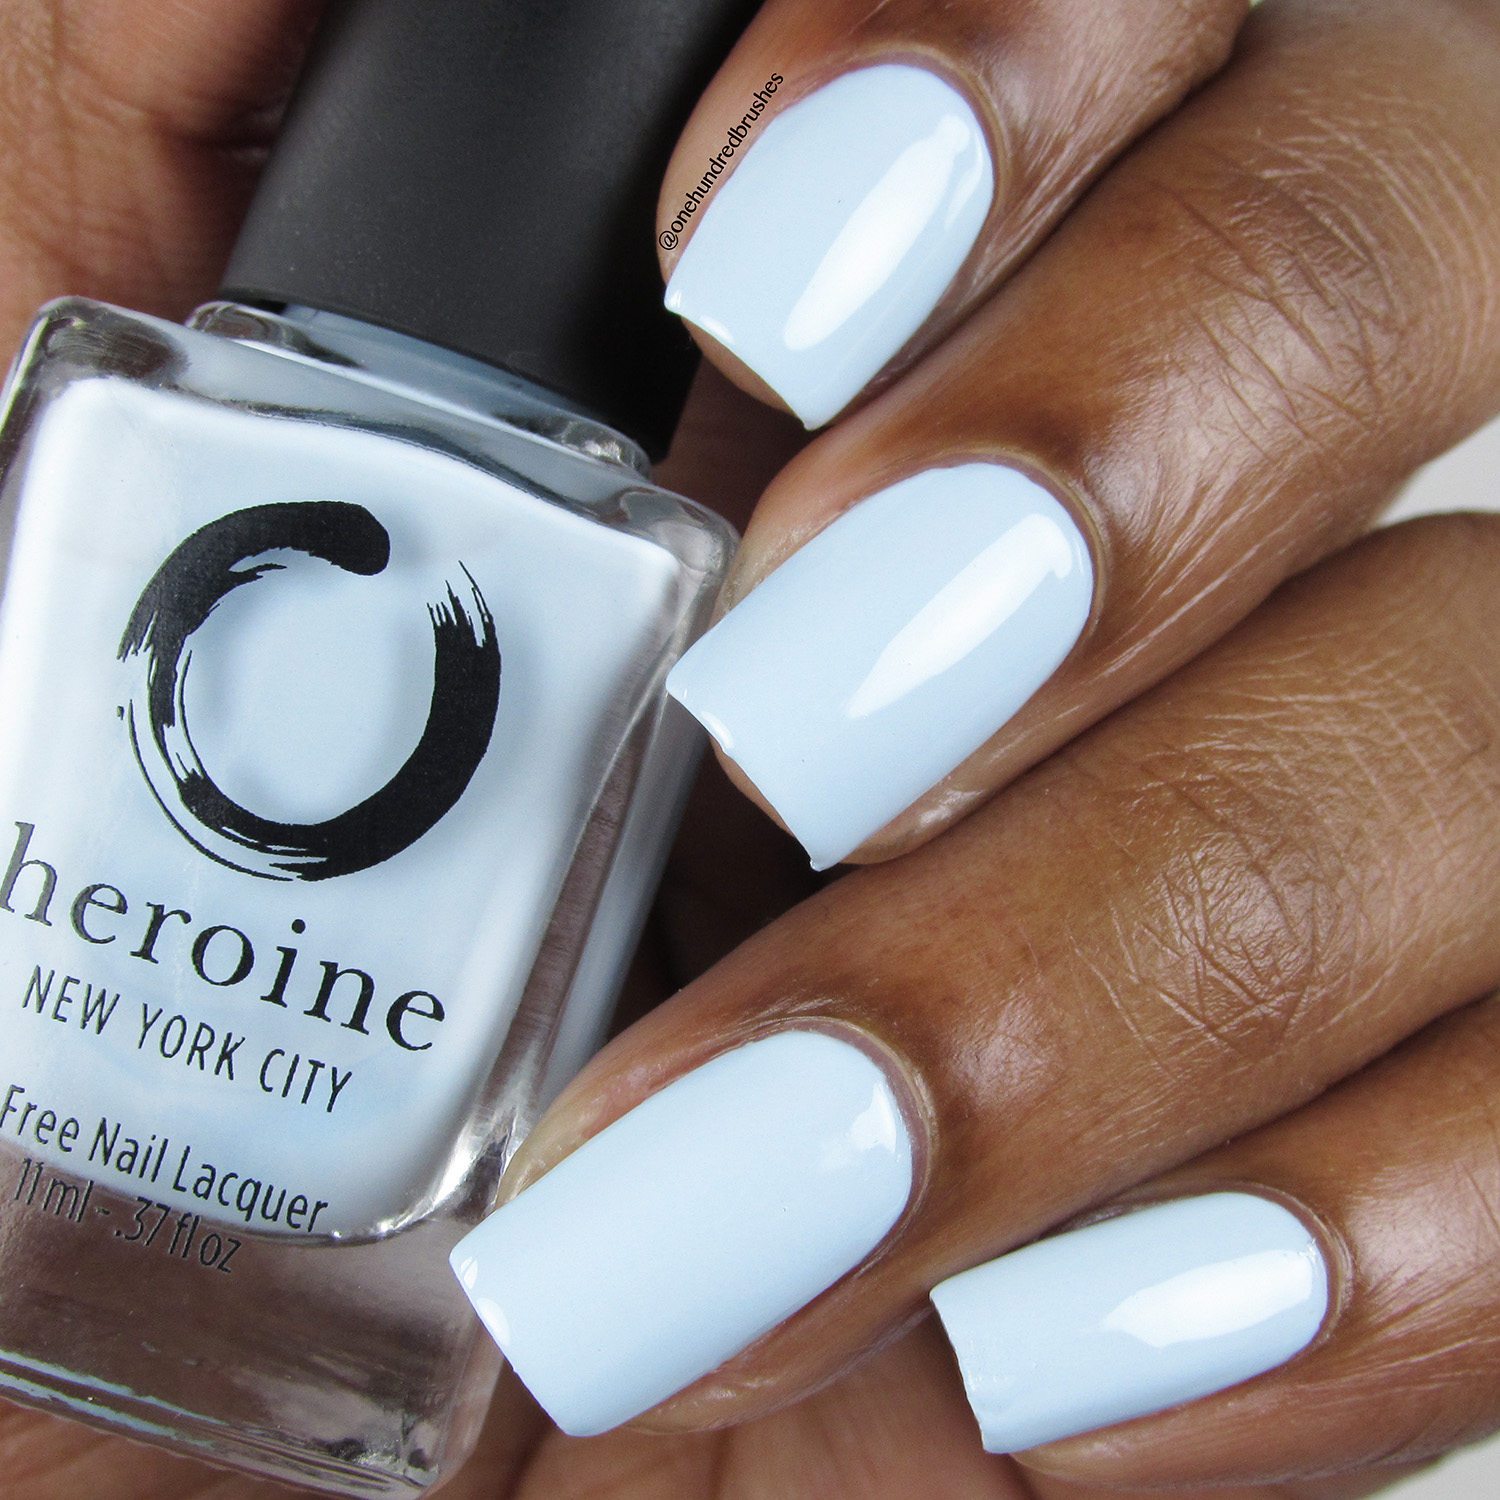 Peek-A-Blue - Bottle Front - Heroine NYC - Dream Cremes - pastel - baby blue